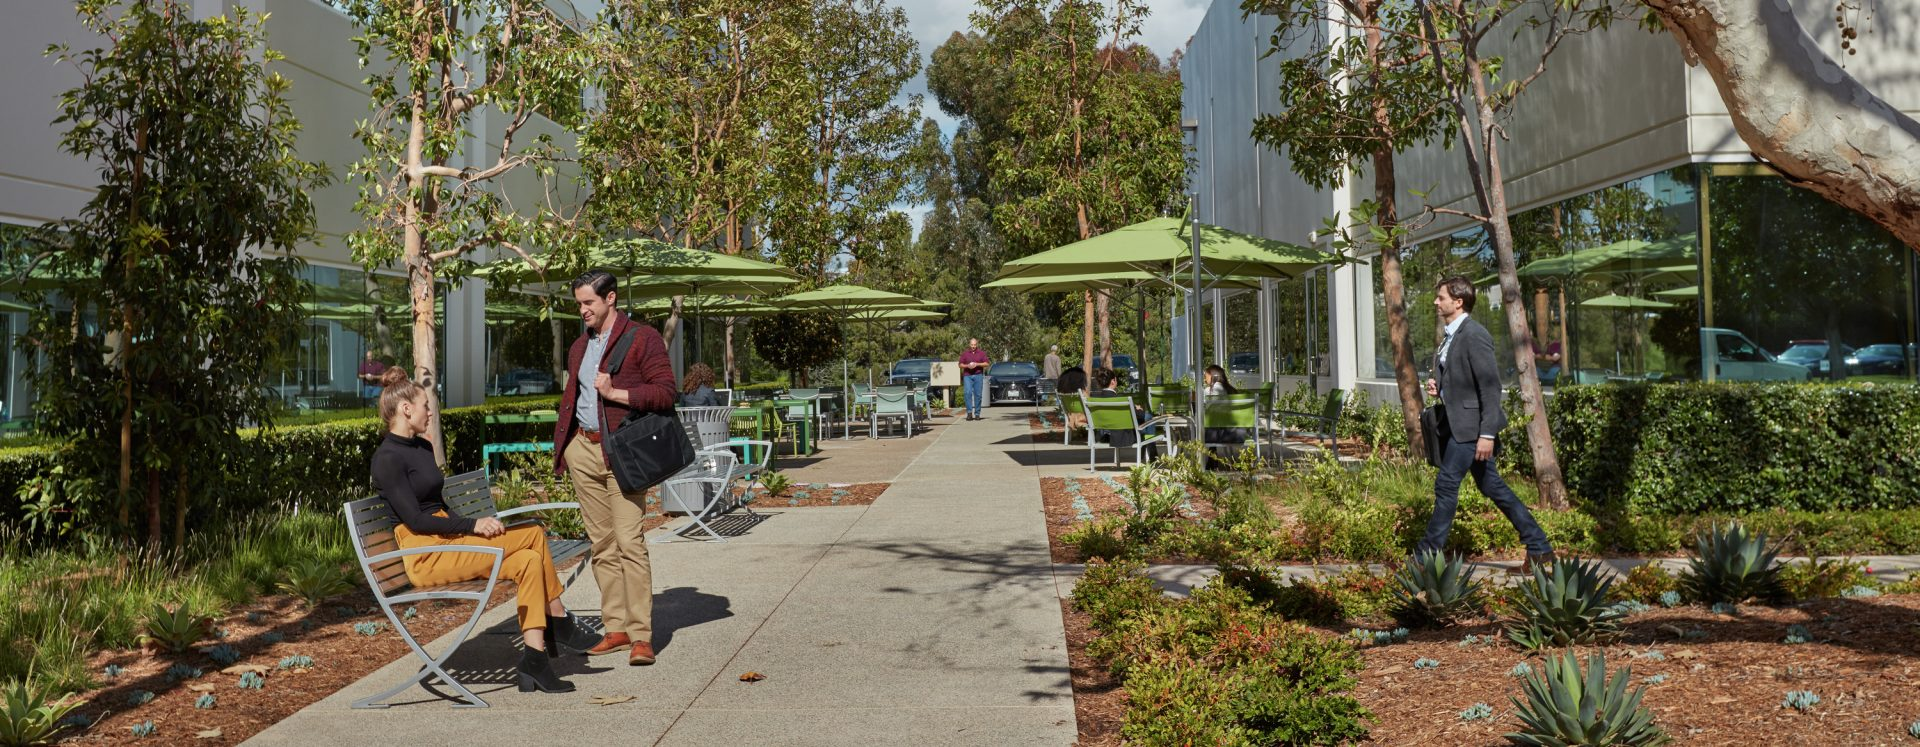 Lifestyle photography of the outdoor reinvestment at Canyon Ridge Technology Park in San Diego, CA